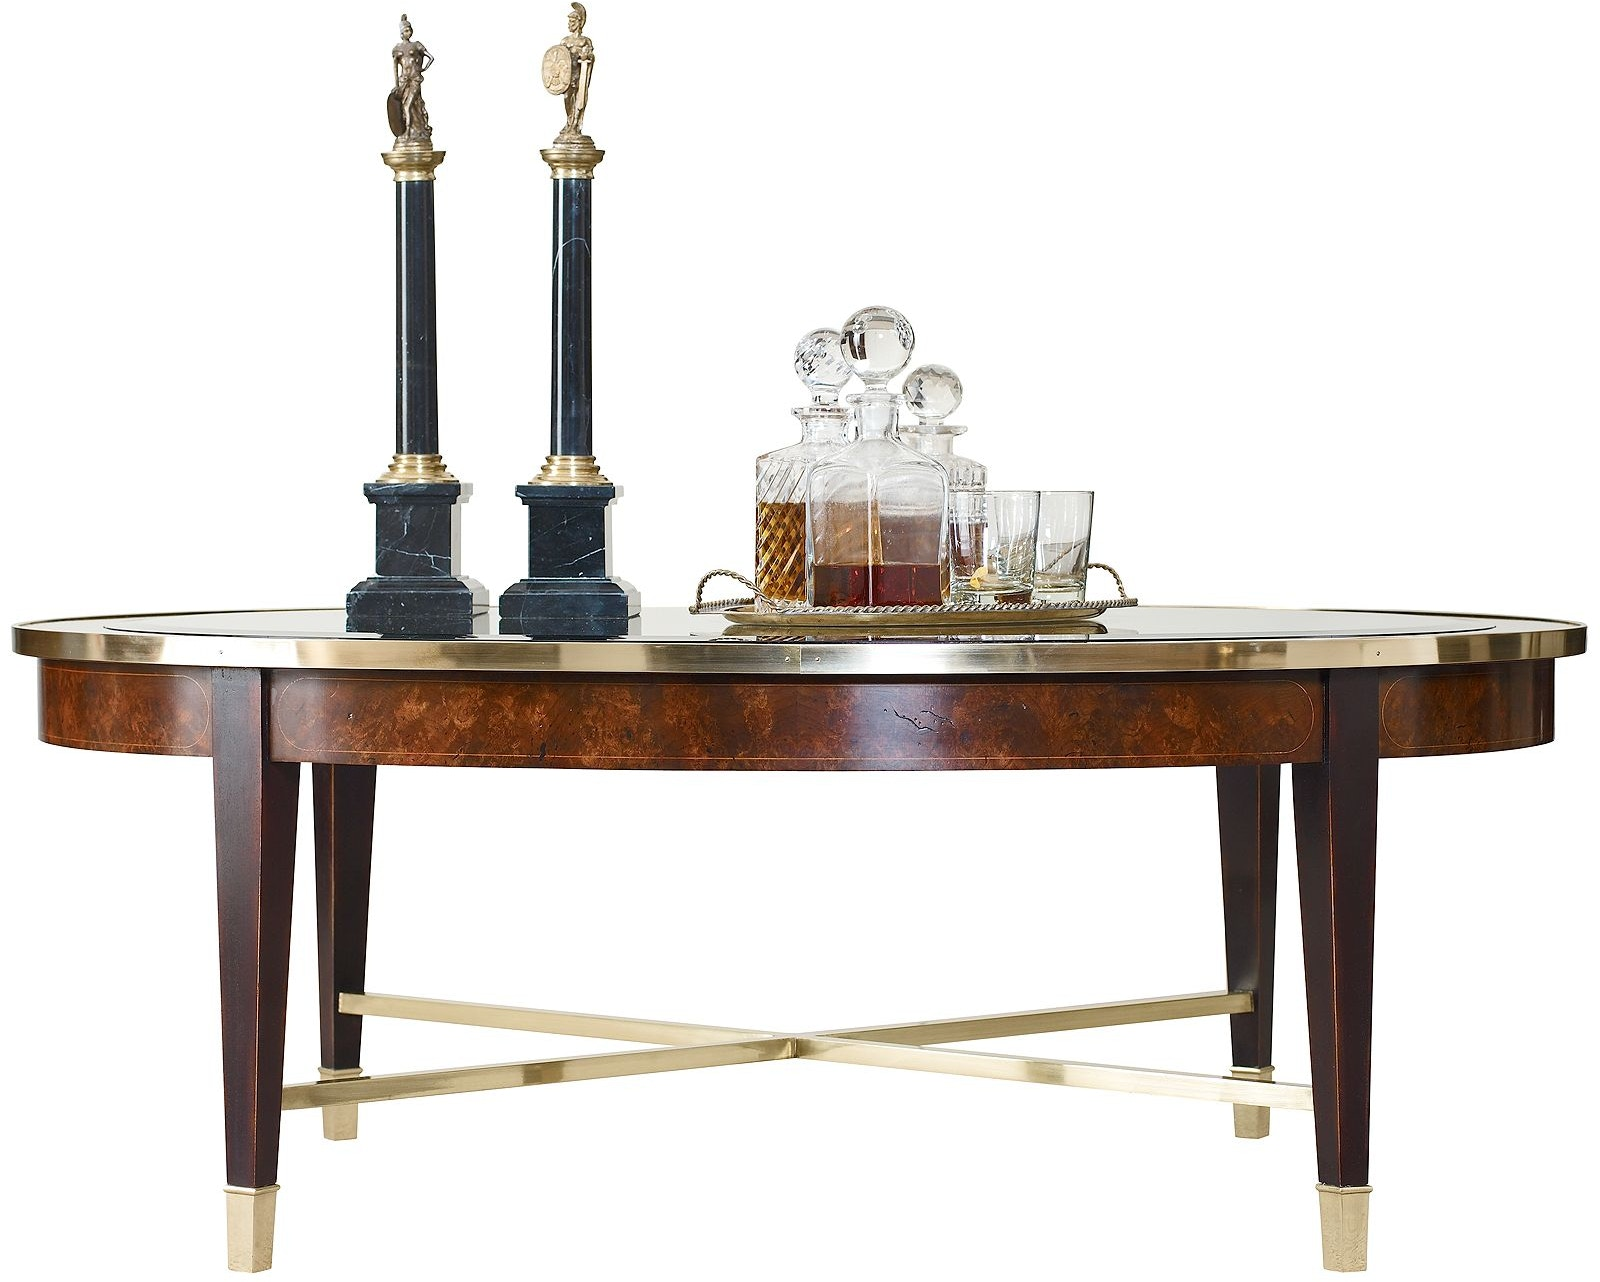 Henredon Furniture 2800 40G Living Room Crossroads Oval Cocktail Table